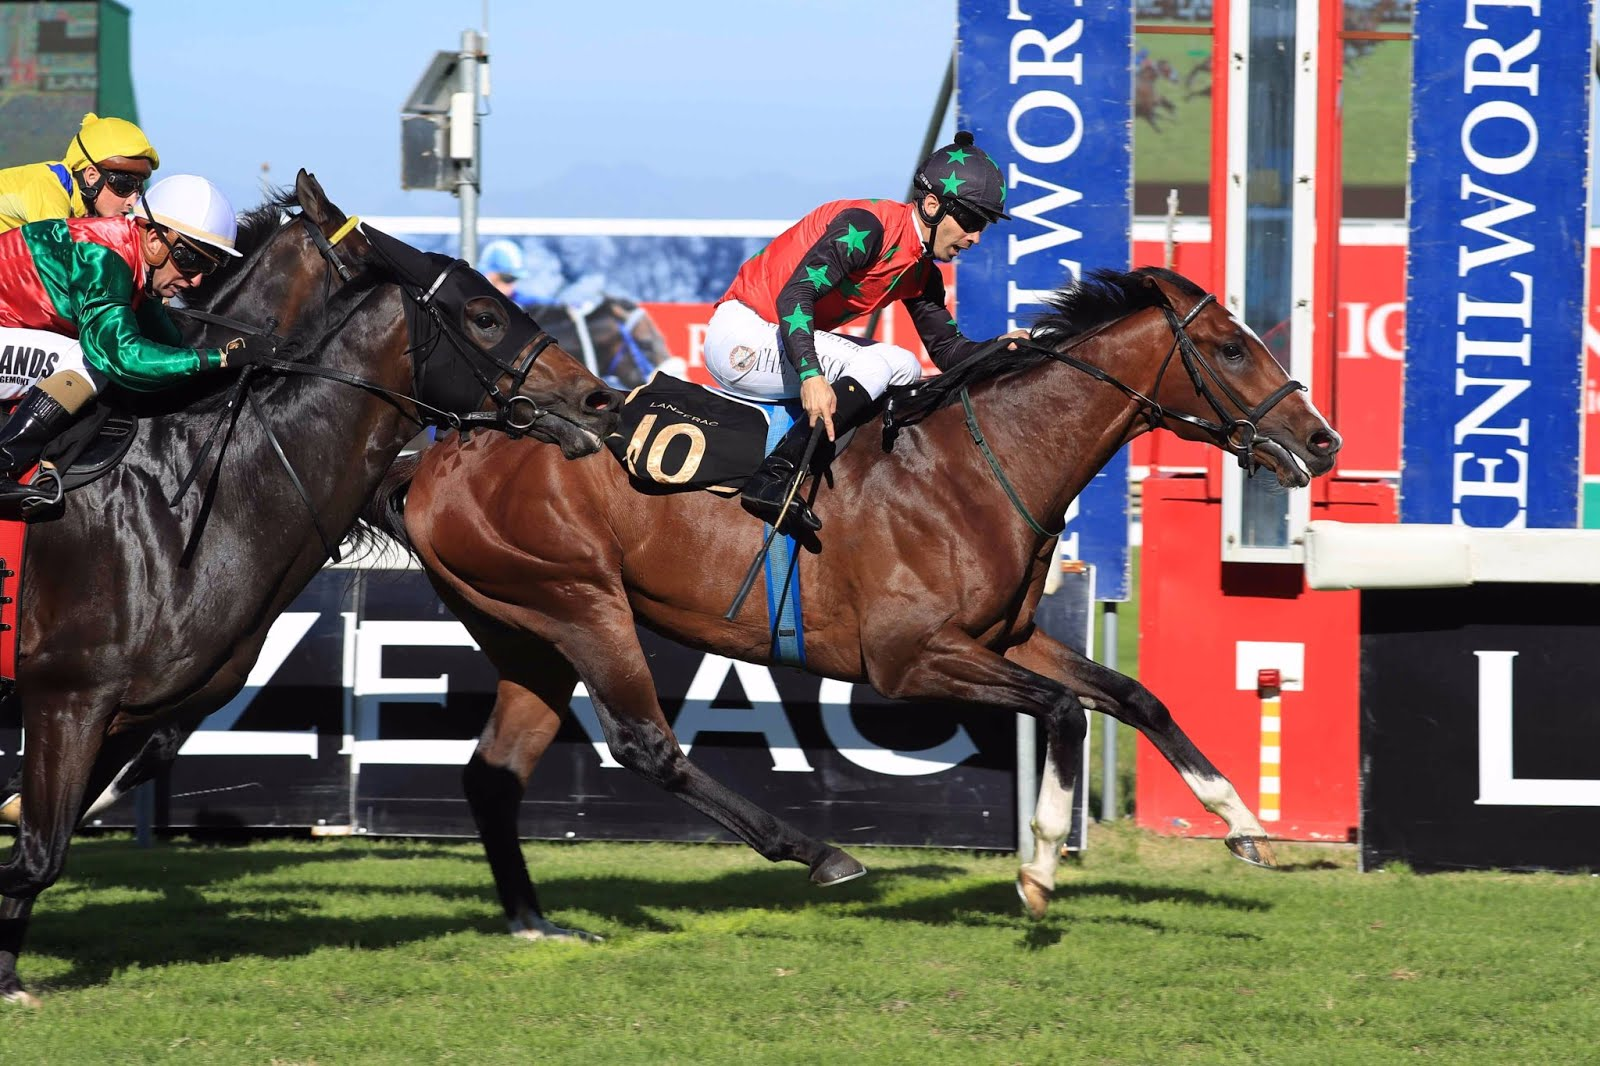 Rocket Countdown - Vodacom Durban July 2018 contender